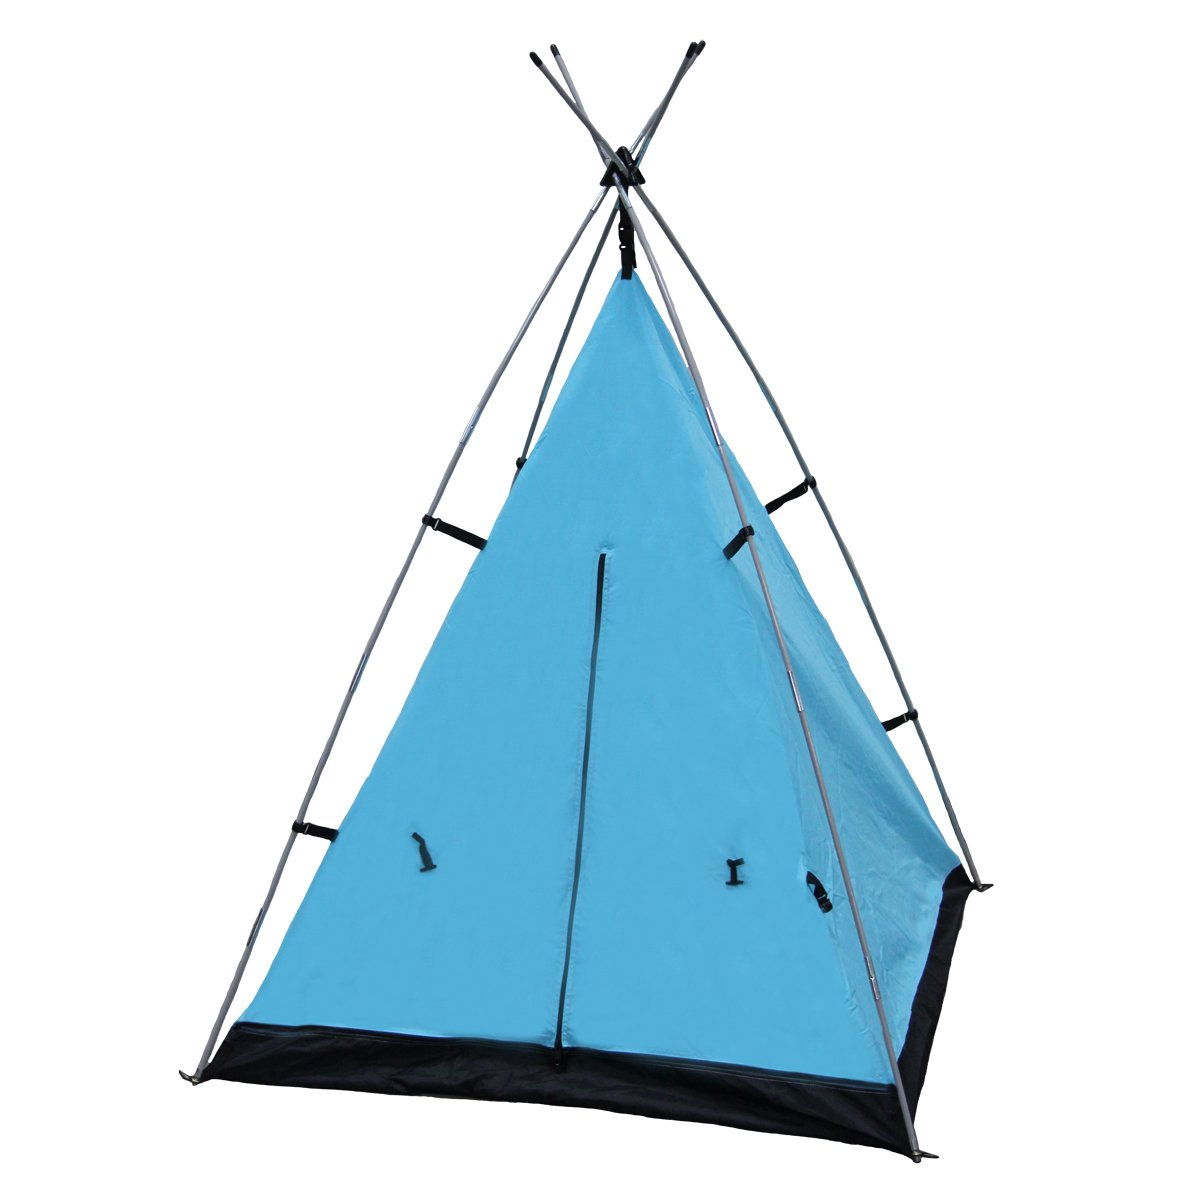 sc 1 st  Amazon.com & Amazon.com : Grip Little Campers Teepee Tent : Sports u0026 Outdoors